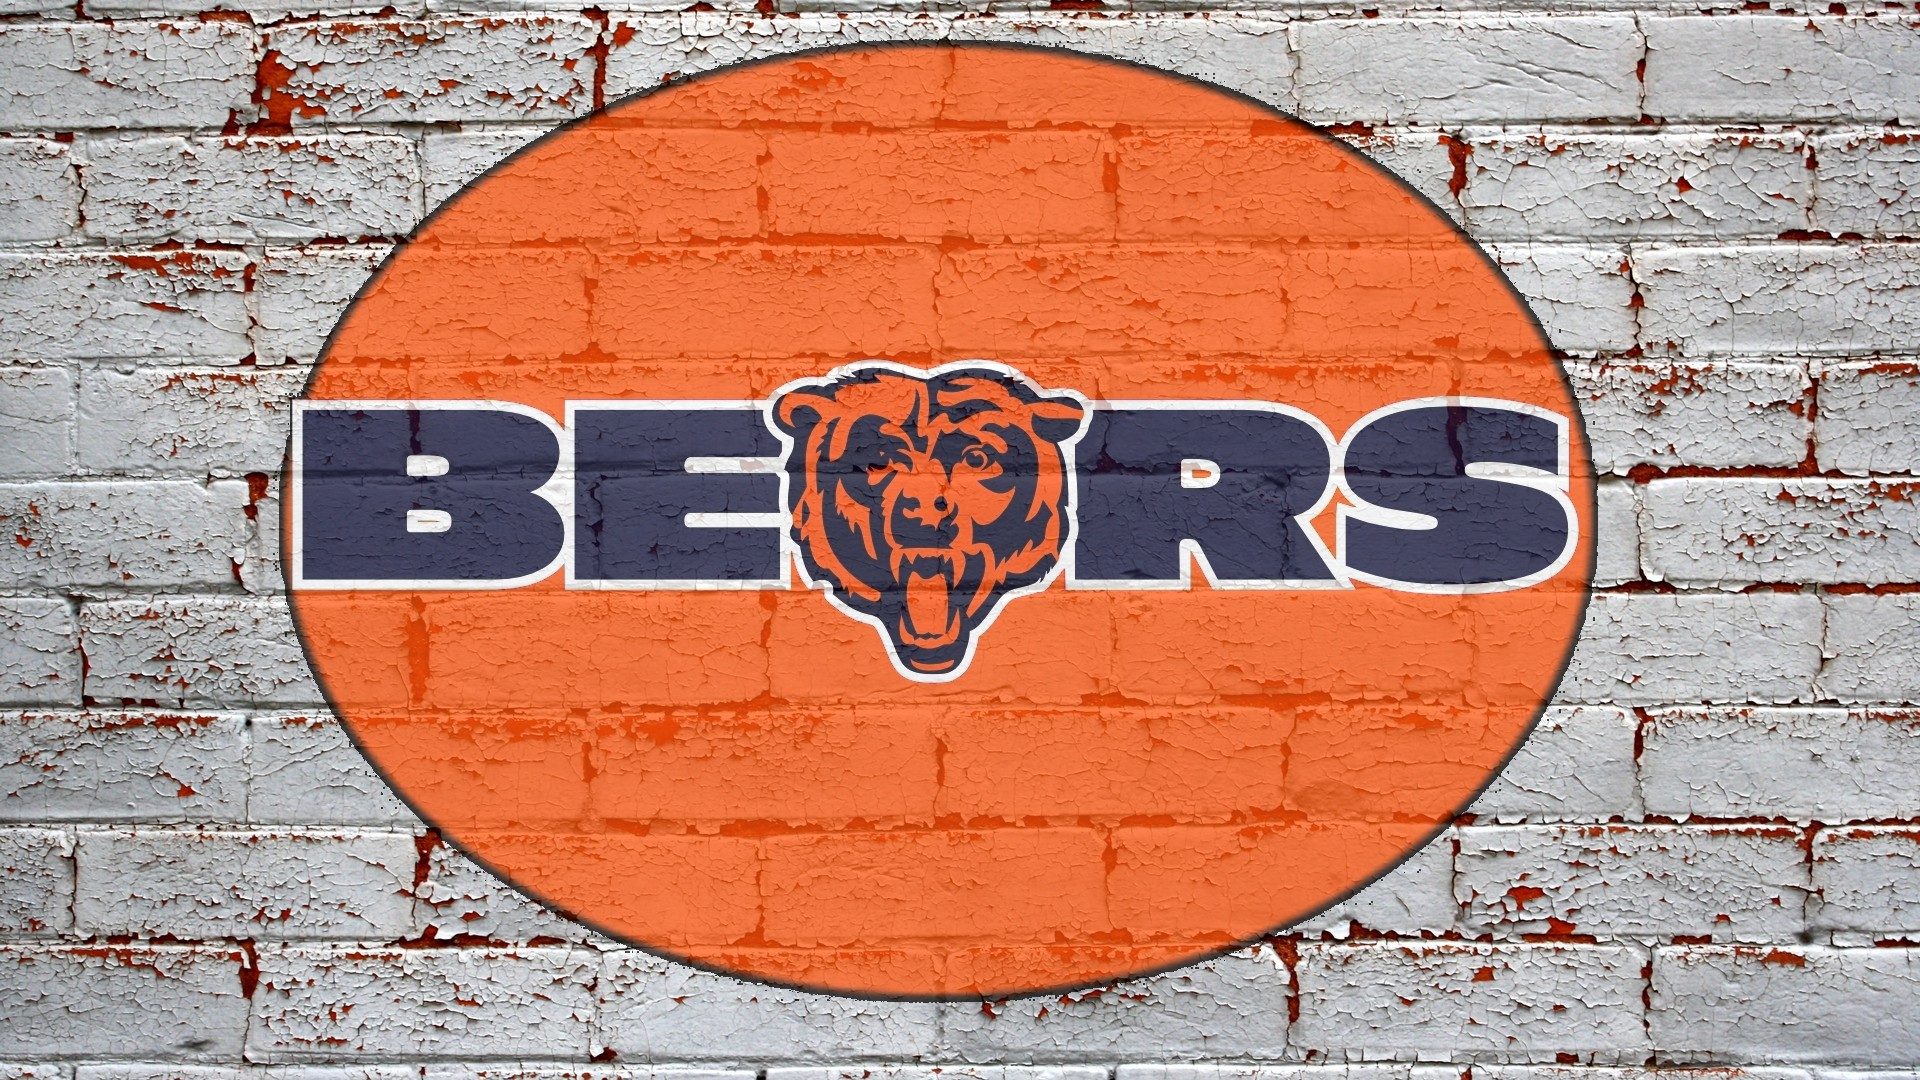 Chicago Bears Wallpaper 1920x1080 Images FemaleCelebrity 1920x1080